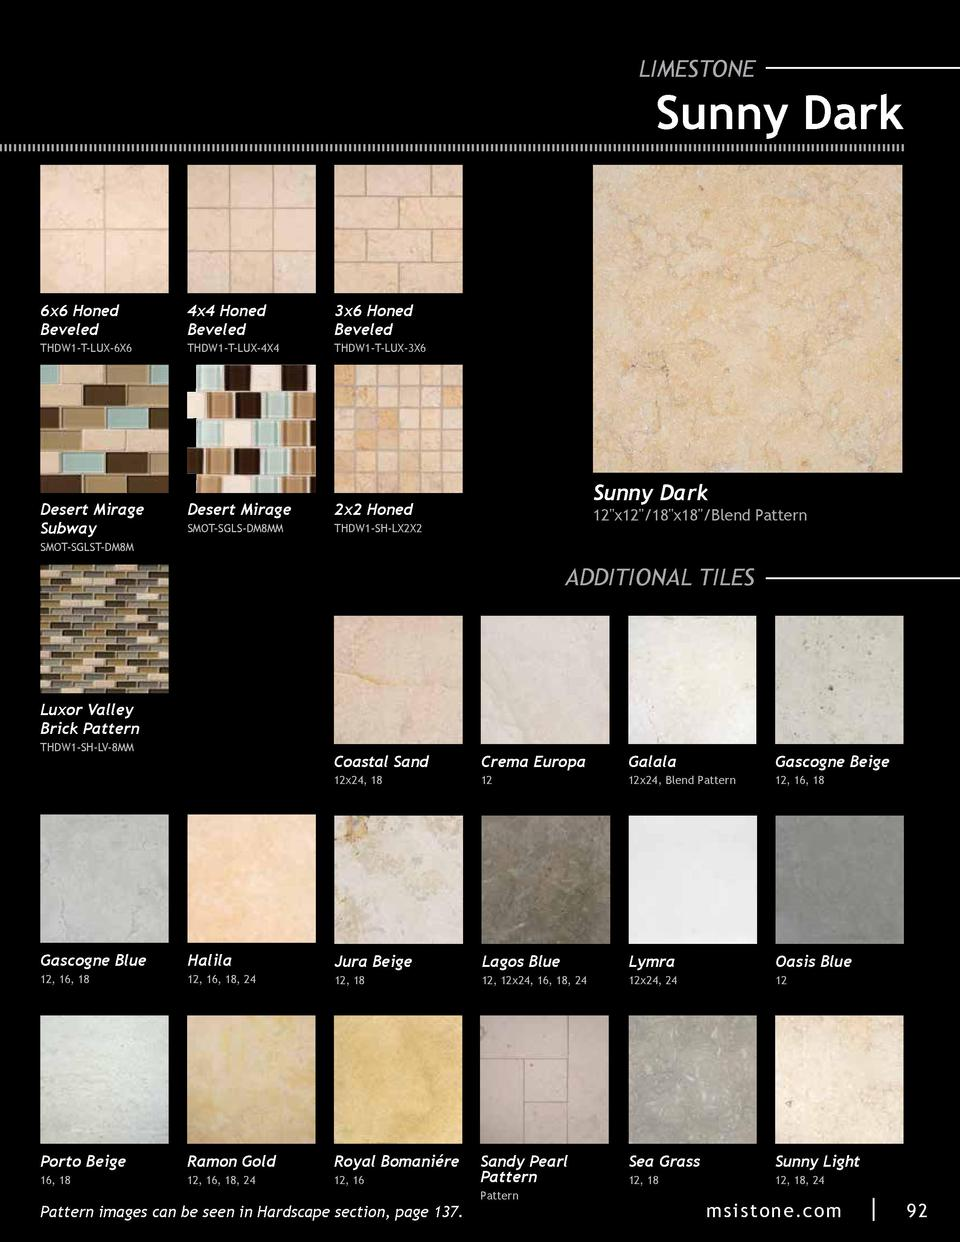 LIMESTONE  Sunny Dark  6x6 Honed Beveled  4x4 Honed Beveled  3x6 Honed Beveled  THDW1-T-LUX-6X6  THDW1-T-LUX-4X4  THDW1-T-...